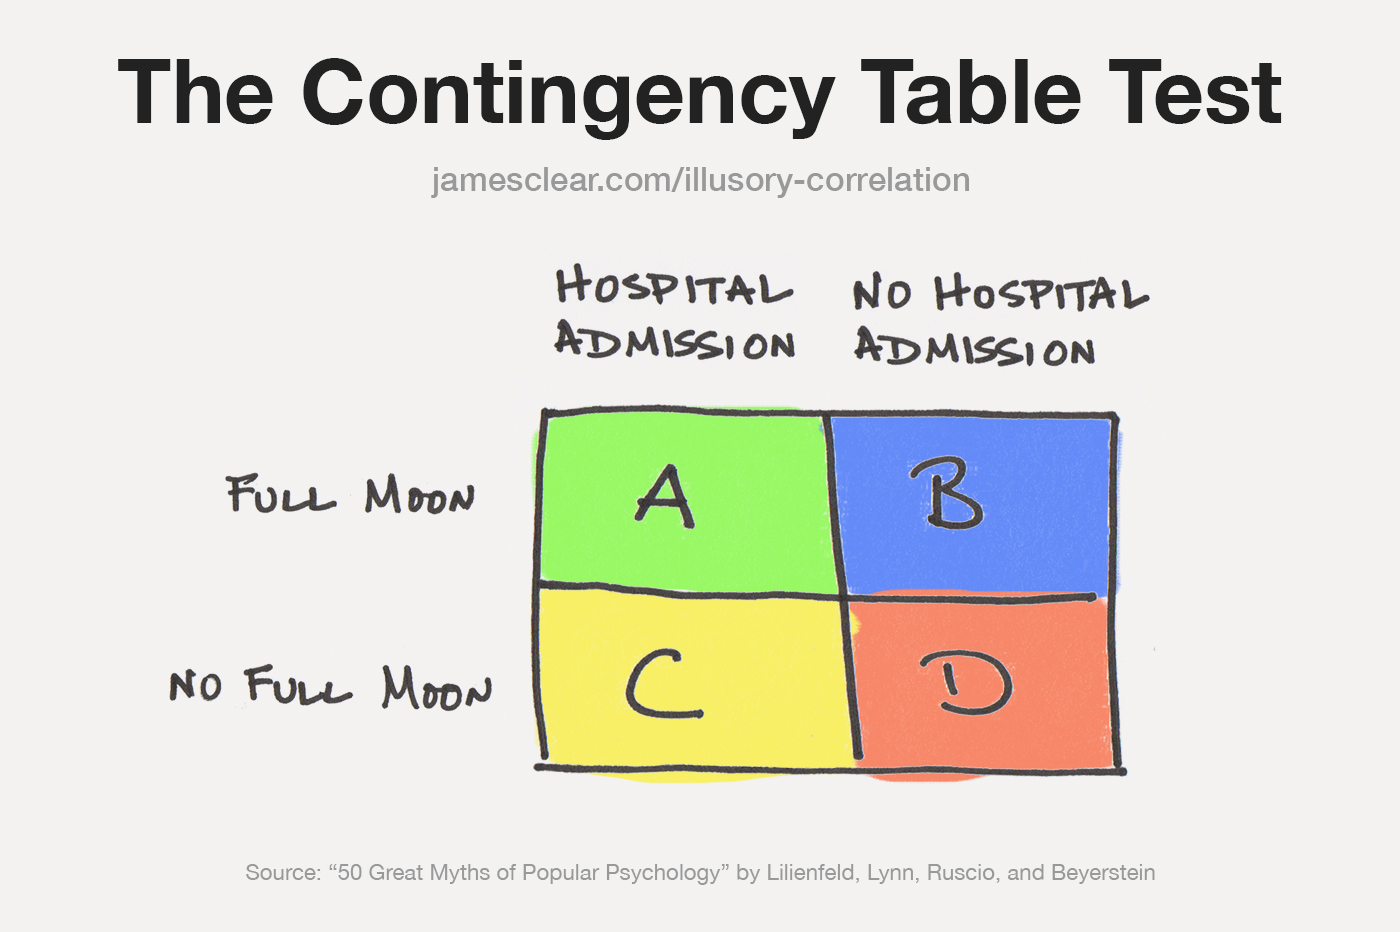 Full moon myth contingency table james clear full moon myth contingency table pooptronica Choice Image